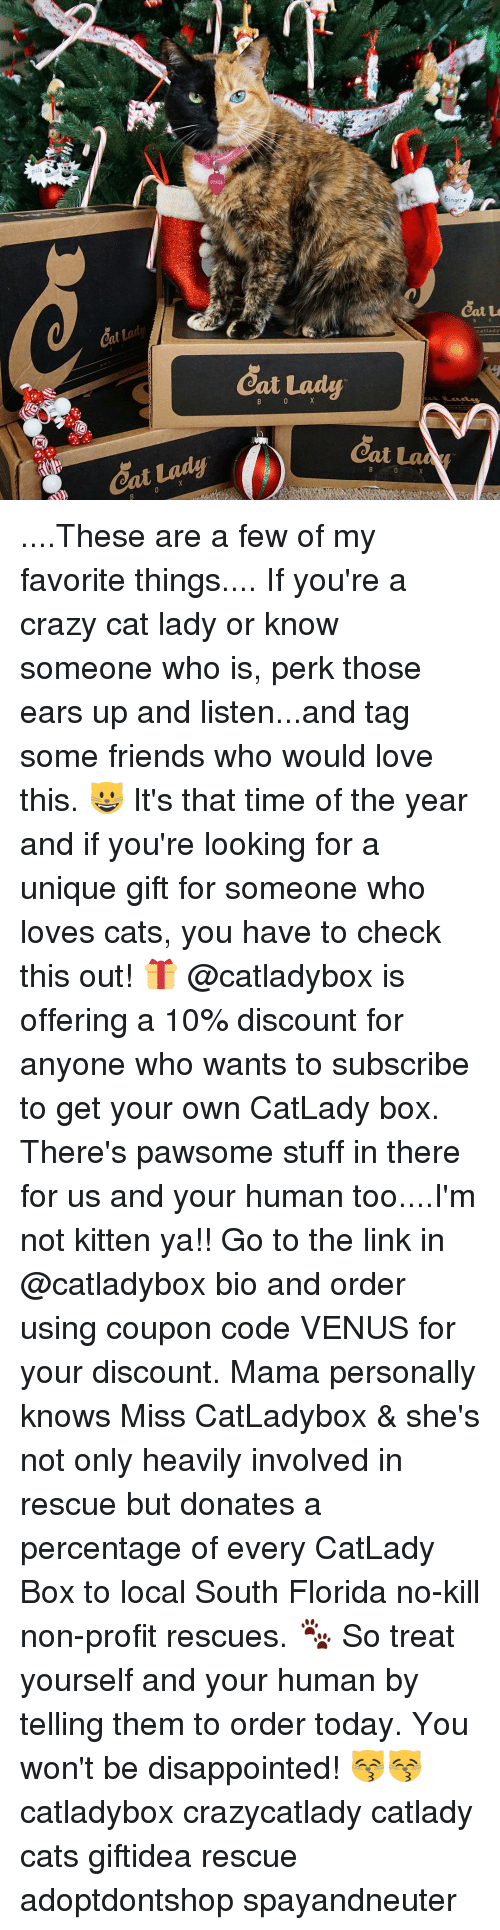 crazy cats: veNUS  Cat Lada  Catue  catlady ....These are a few of my favorite things.... If you're a crazy cat lady or know someone who is, perk those ears up and listen...and tag some friends who would love this. 😺 It's that time of the year and if you're looking for a unique gift for someone who loves cats, you have to check this out! 🎁 @catladybox is offering a 10% discount for anyone who wants to subscribe to get your own CatLady box. There's pawsome stuff in there for us and your human too....I'm not kitten ya!! Go to the link in @catladybox bio and order using coupon code VENUS for your discount. Mama personally knows Miss CatLadybox & she's not only heavily involved in rescue but donates a percentage of every CatLady Box to local South Florida no-kill non-profit rescues. 🐾 So treat yourself and your human by telling them to order today. You won't be disappointed! 😽😽 catladybox crazycatlady catlady cats giftidea rescue adoptdontshop spayandneuter